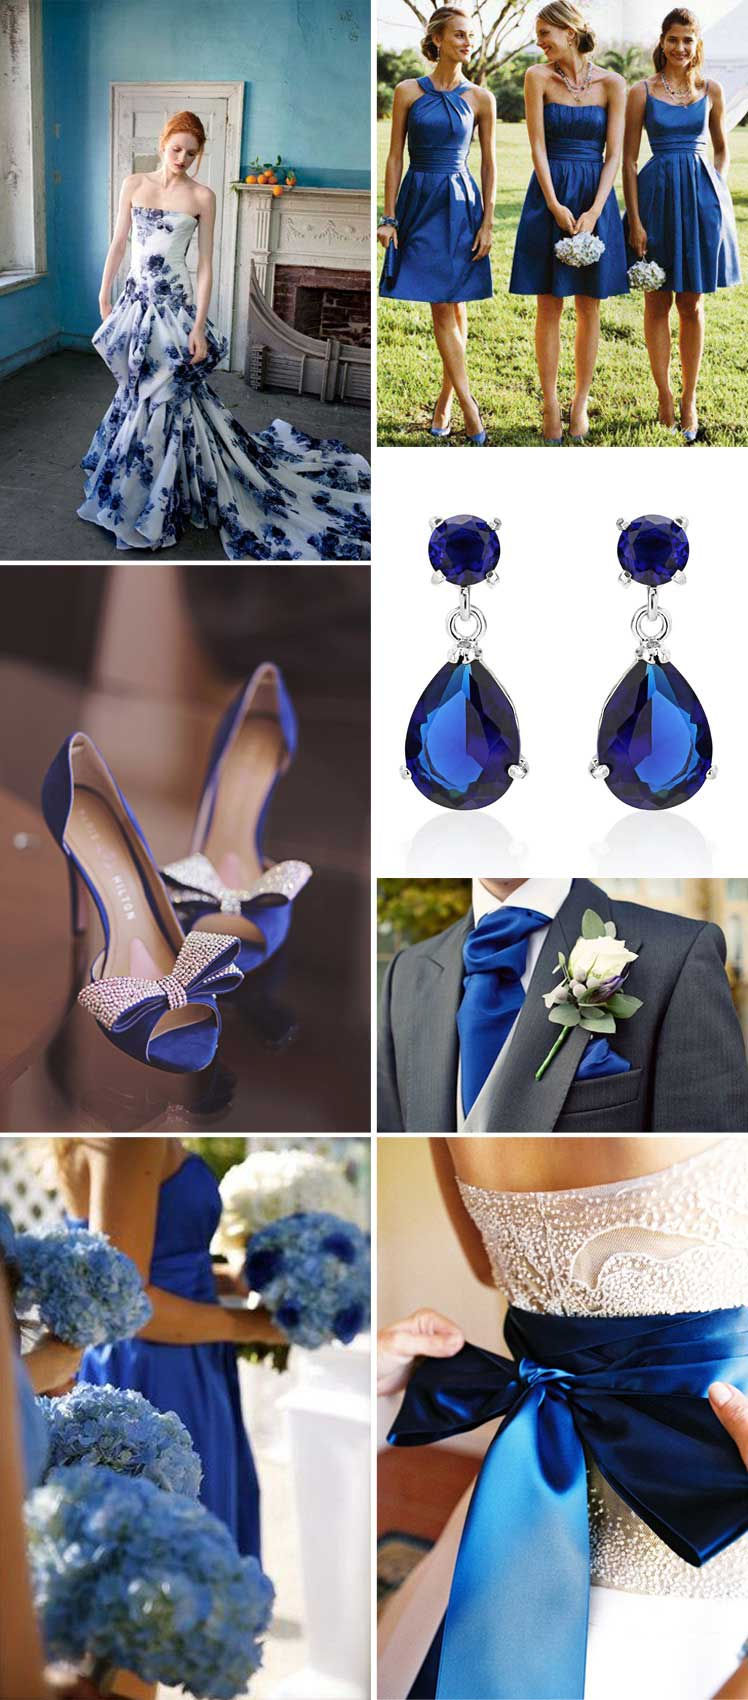 Sapphire style for the bride and wedding party